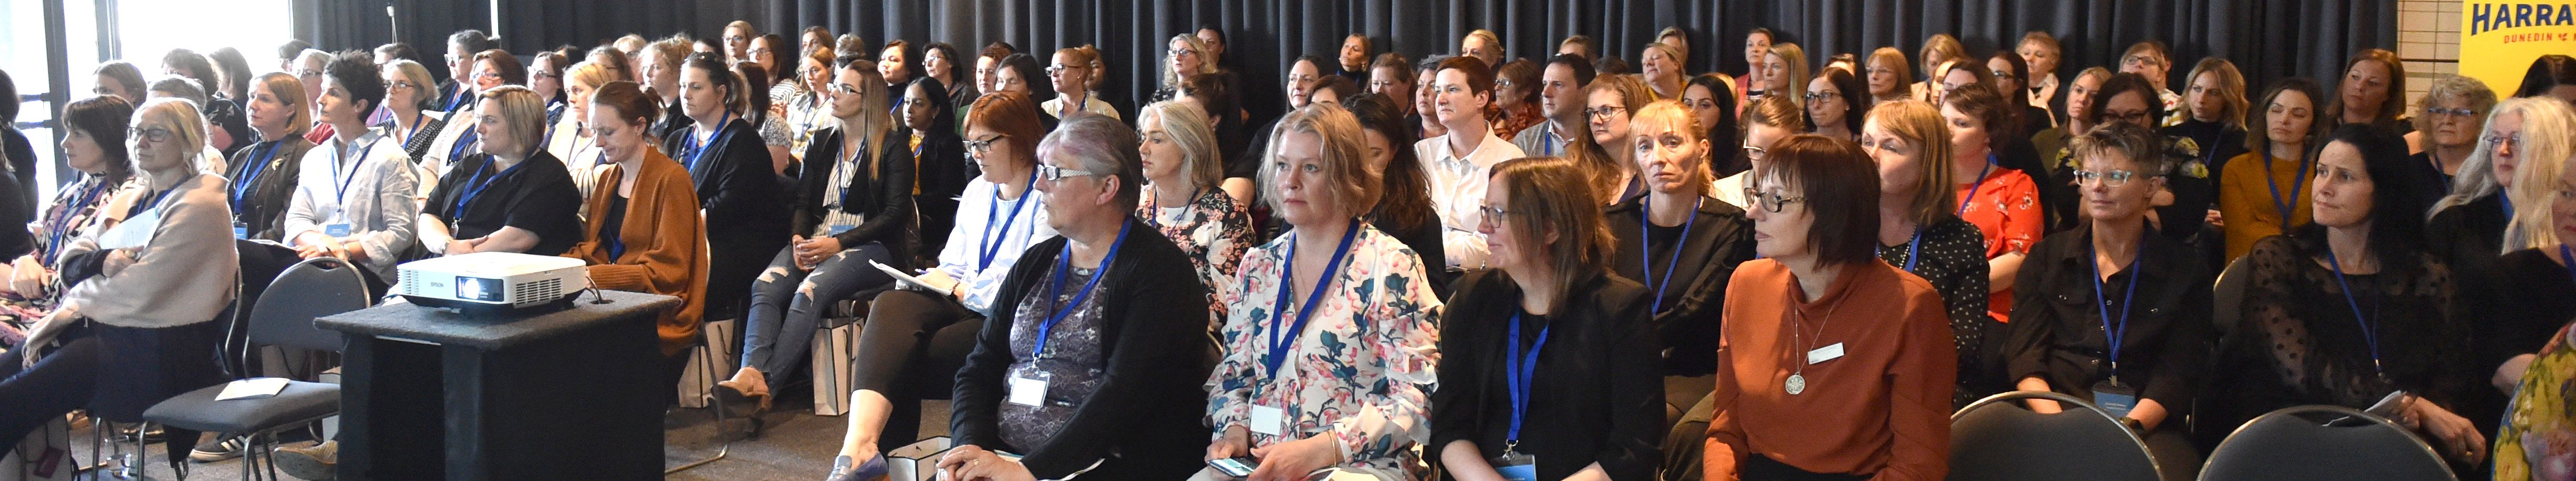 Women in business event at the Dunedin Public Art Gallery on Thursday afternoon. PHOTO: Gregor...